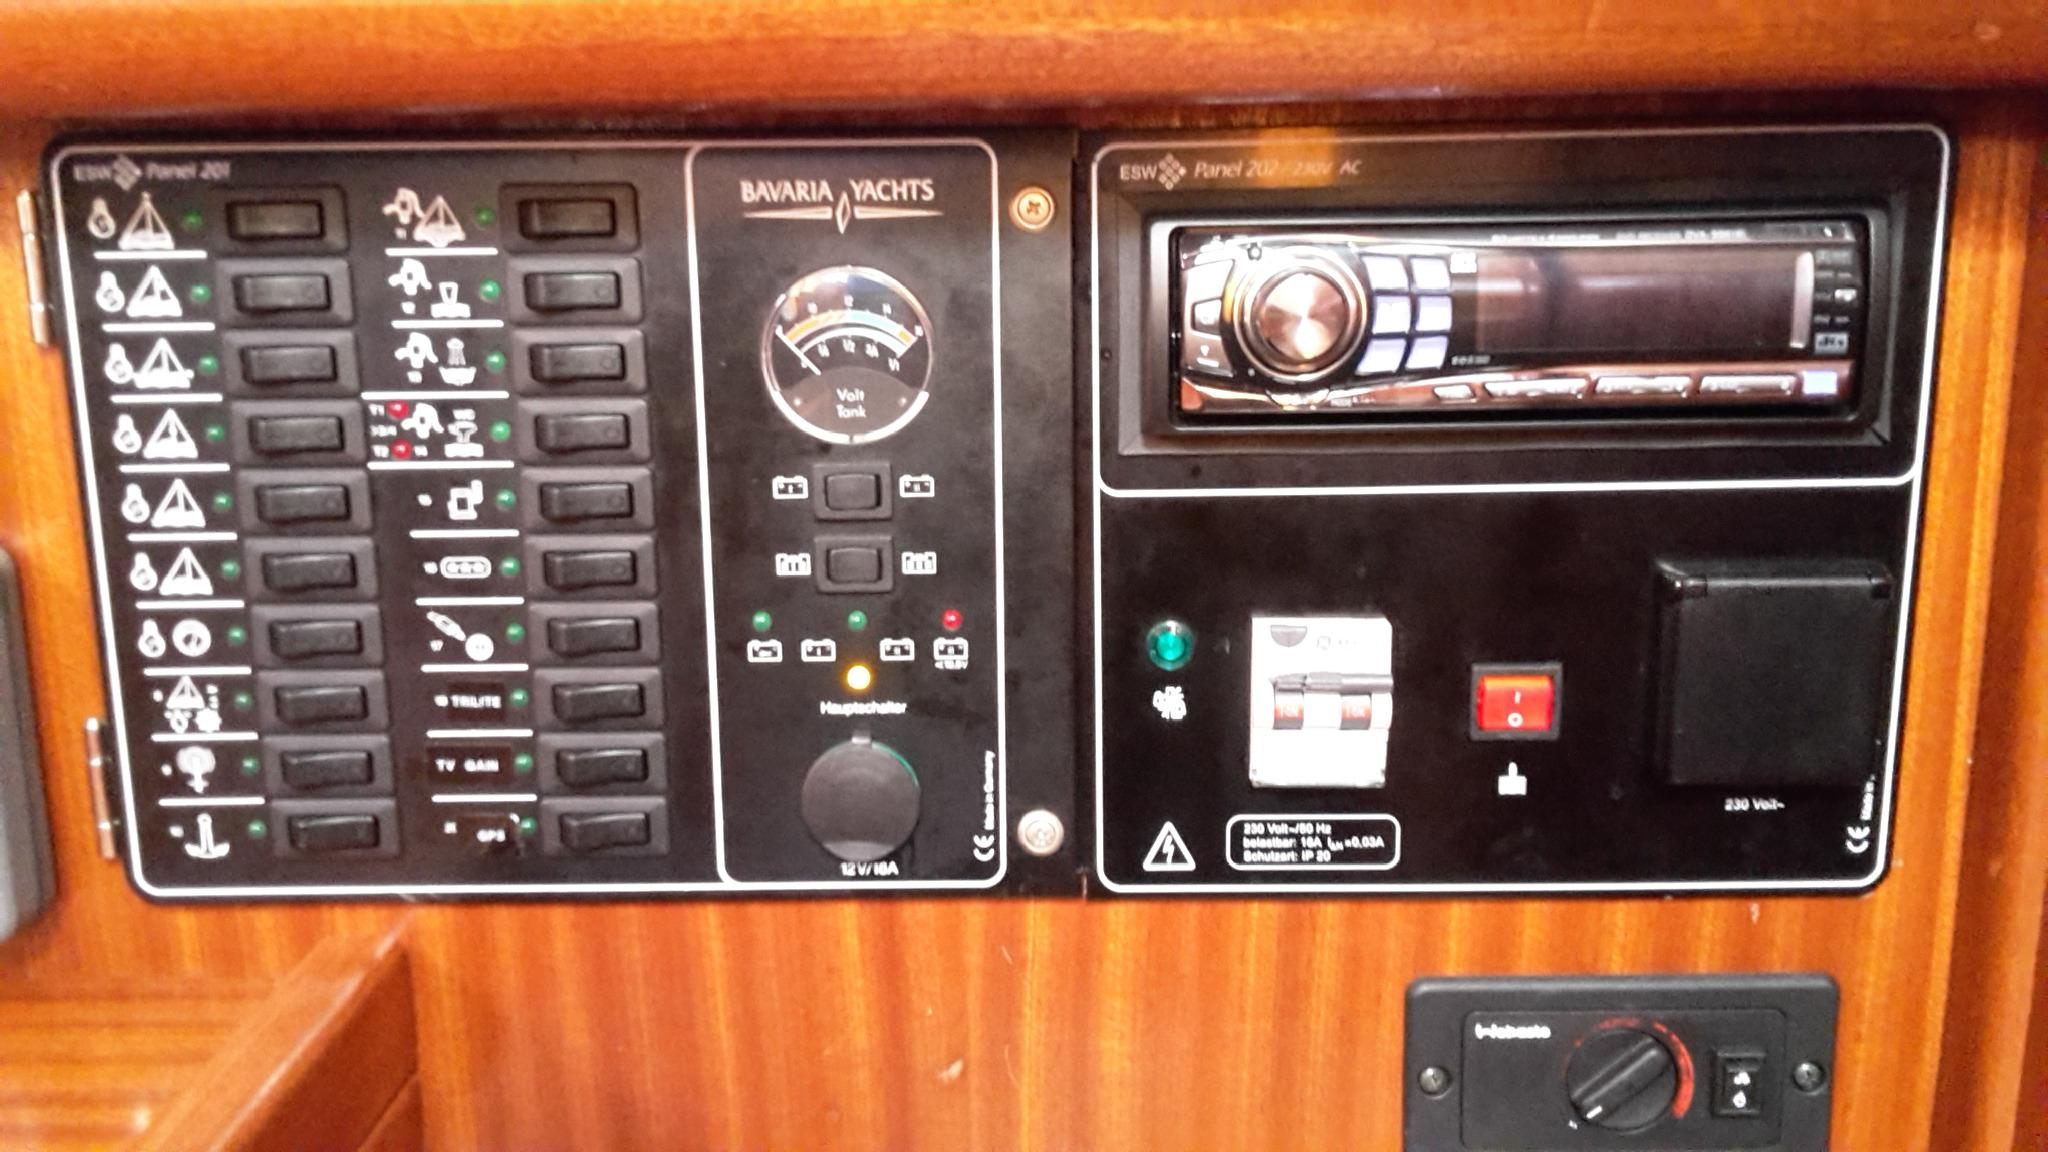 Bavaria 32 switch panel